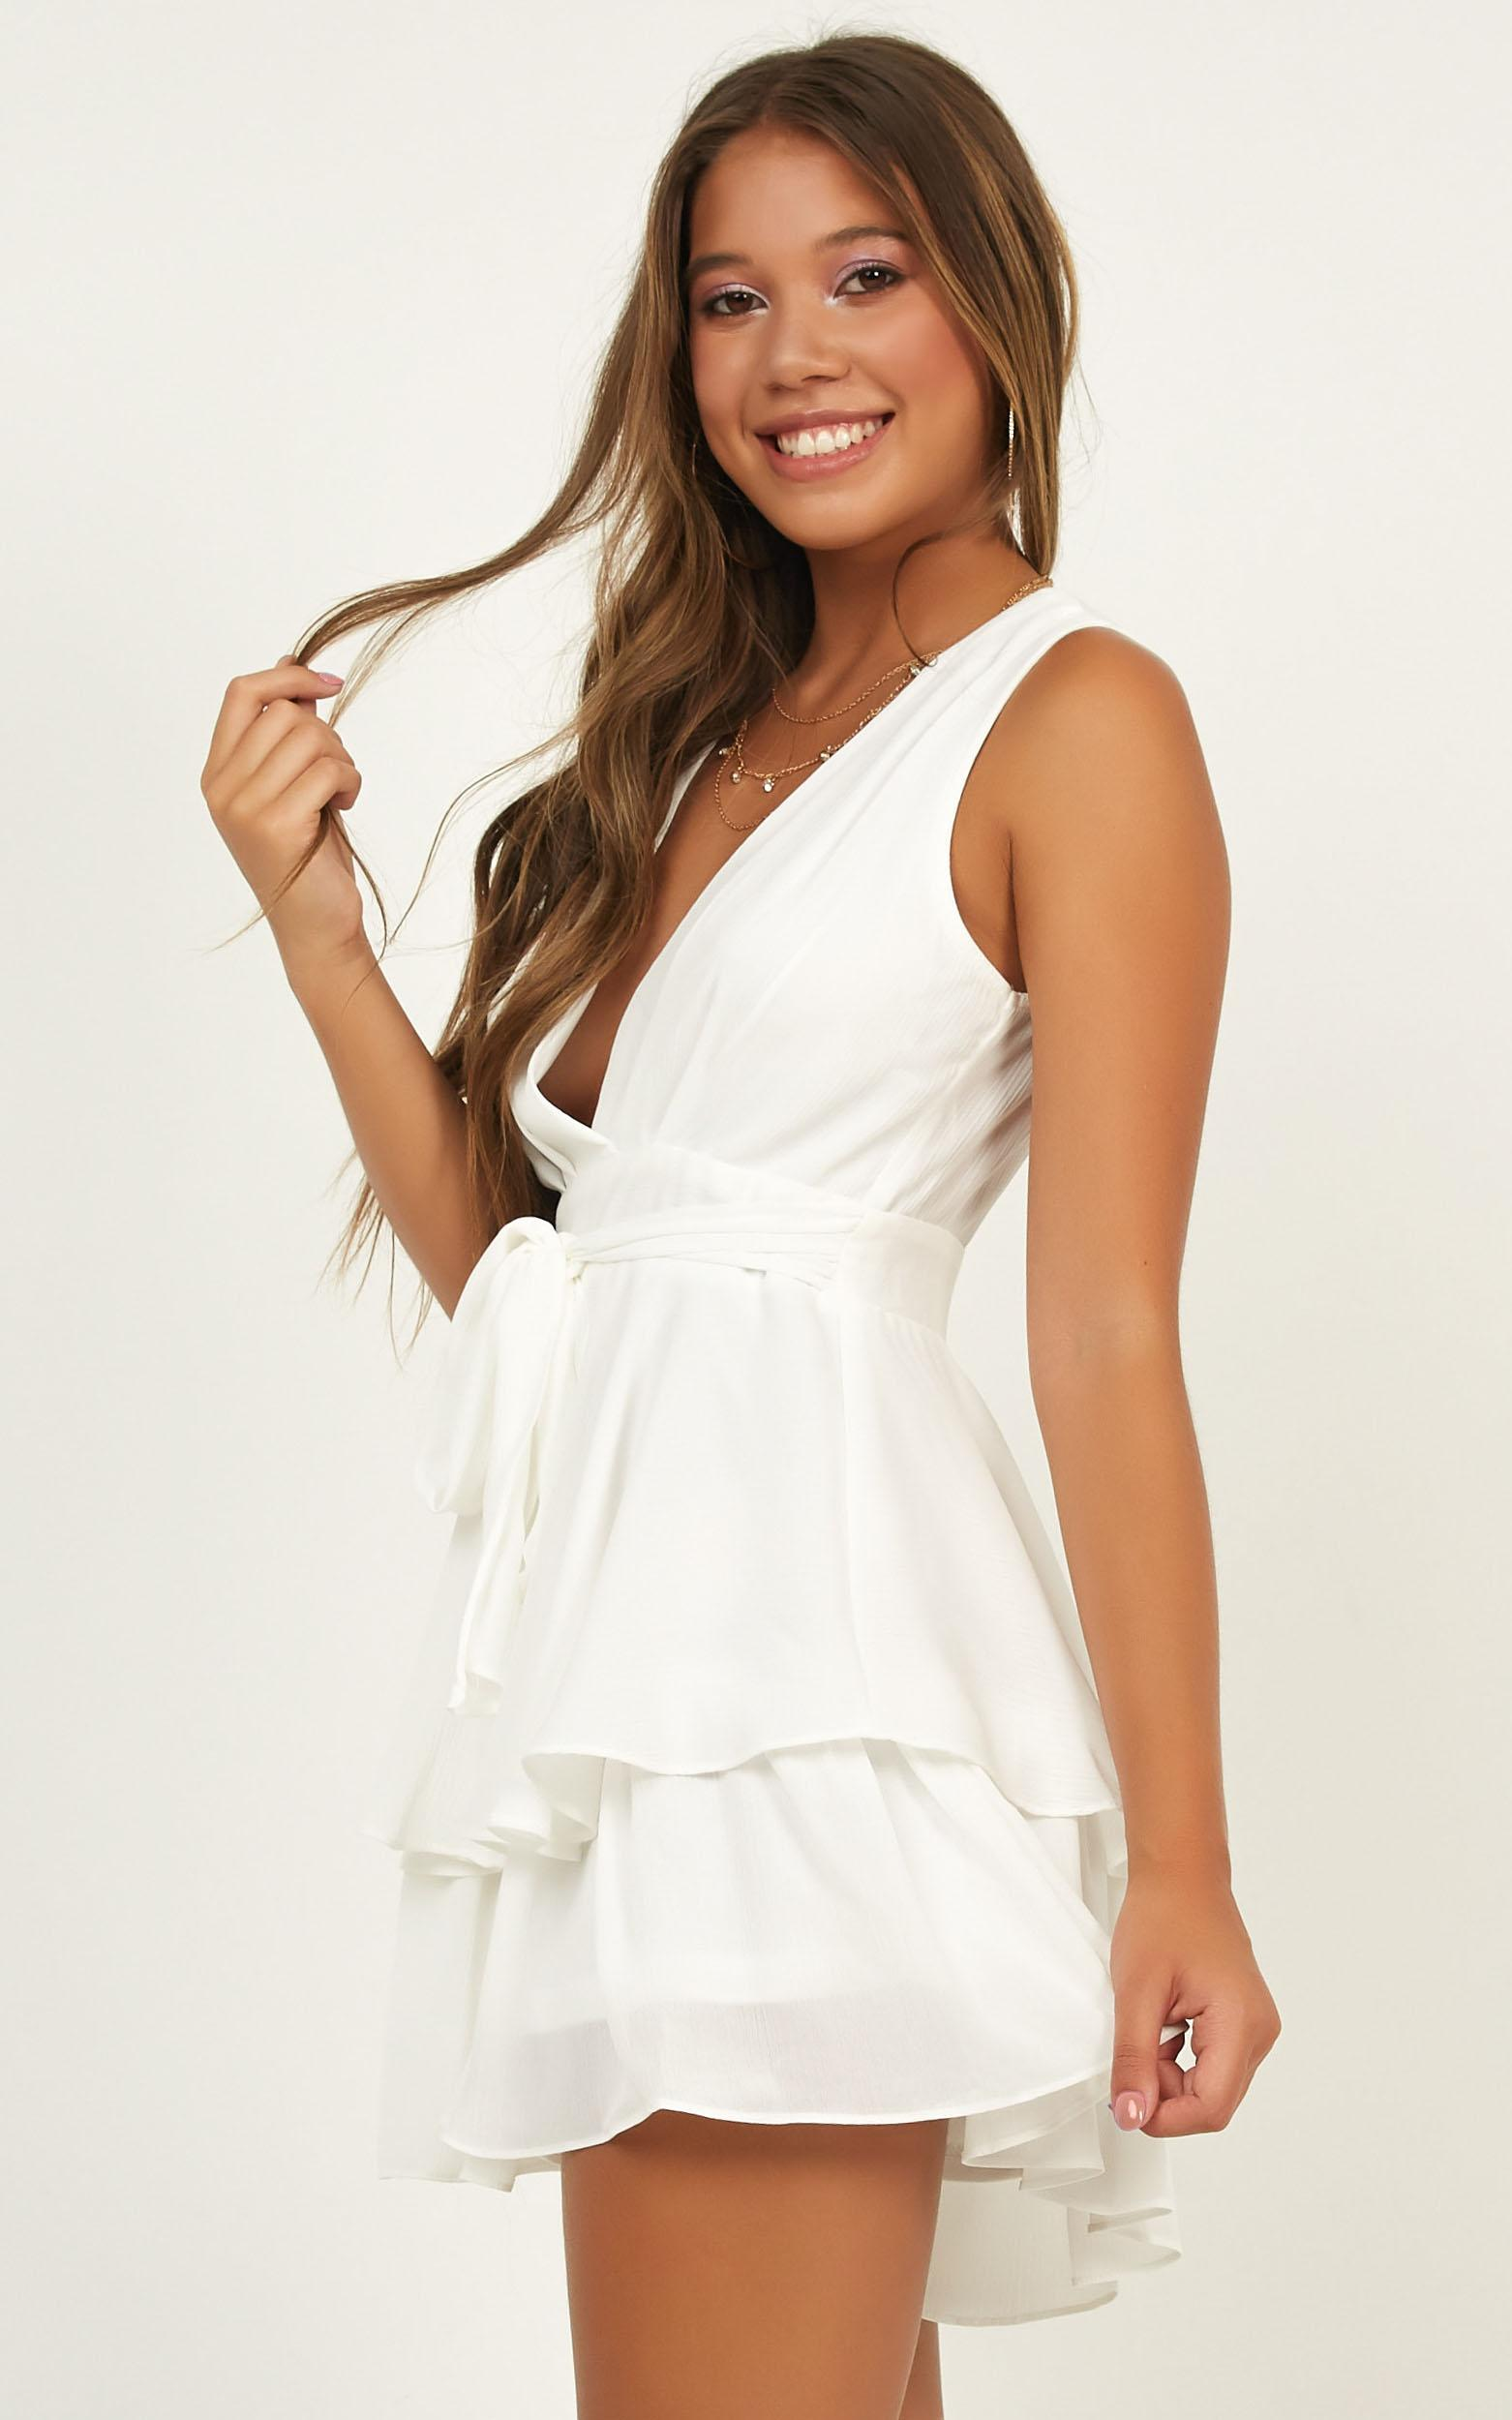 Brave Heart playsuit in white - 14 (XL), White, hi-res image number null